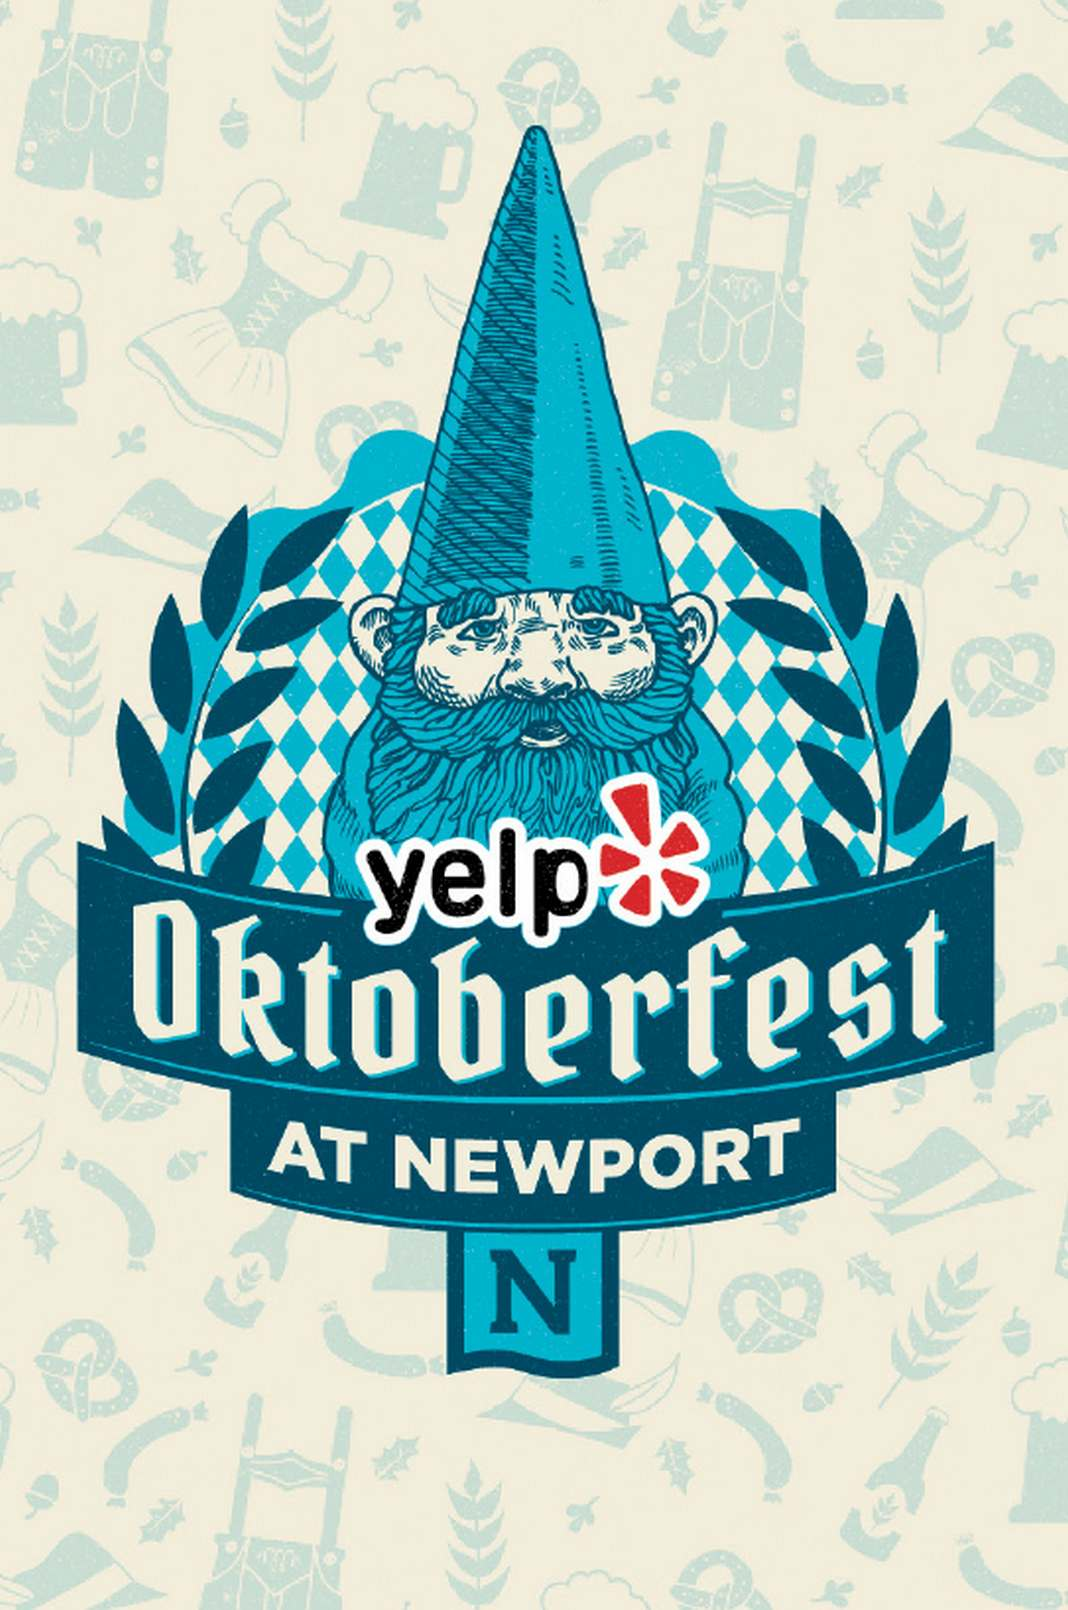 Check out the Oktoberfest restaurant crawl in Newport!